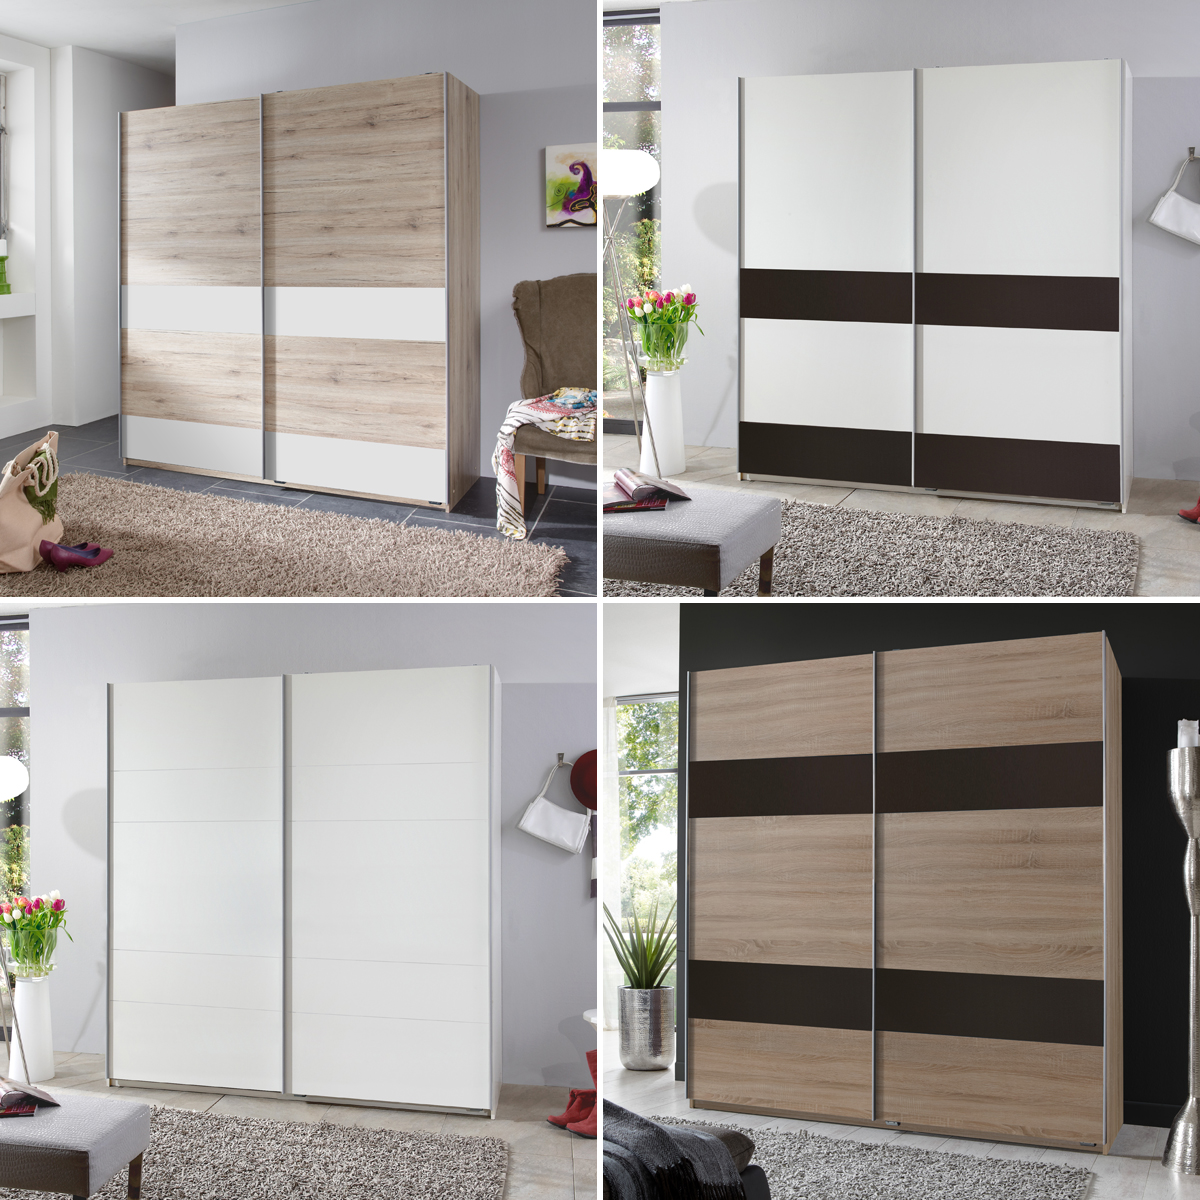 wohnwand 180 cm breit wandboard arena sonoma eiche wei 180 cm breit wohnwand iglesia 1 wei. Black Bedroom Furniture Sets. Home Design Ideas